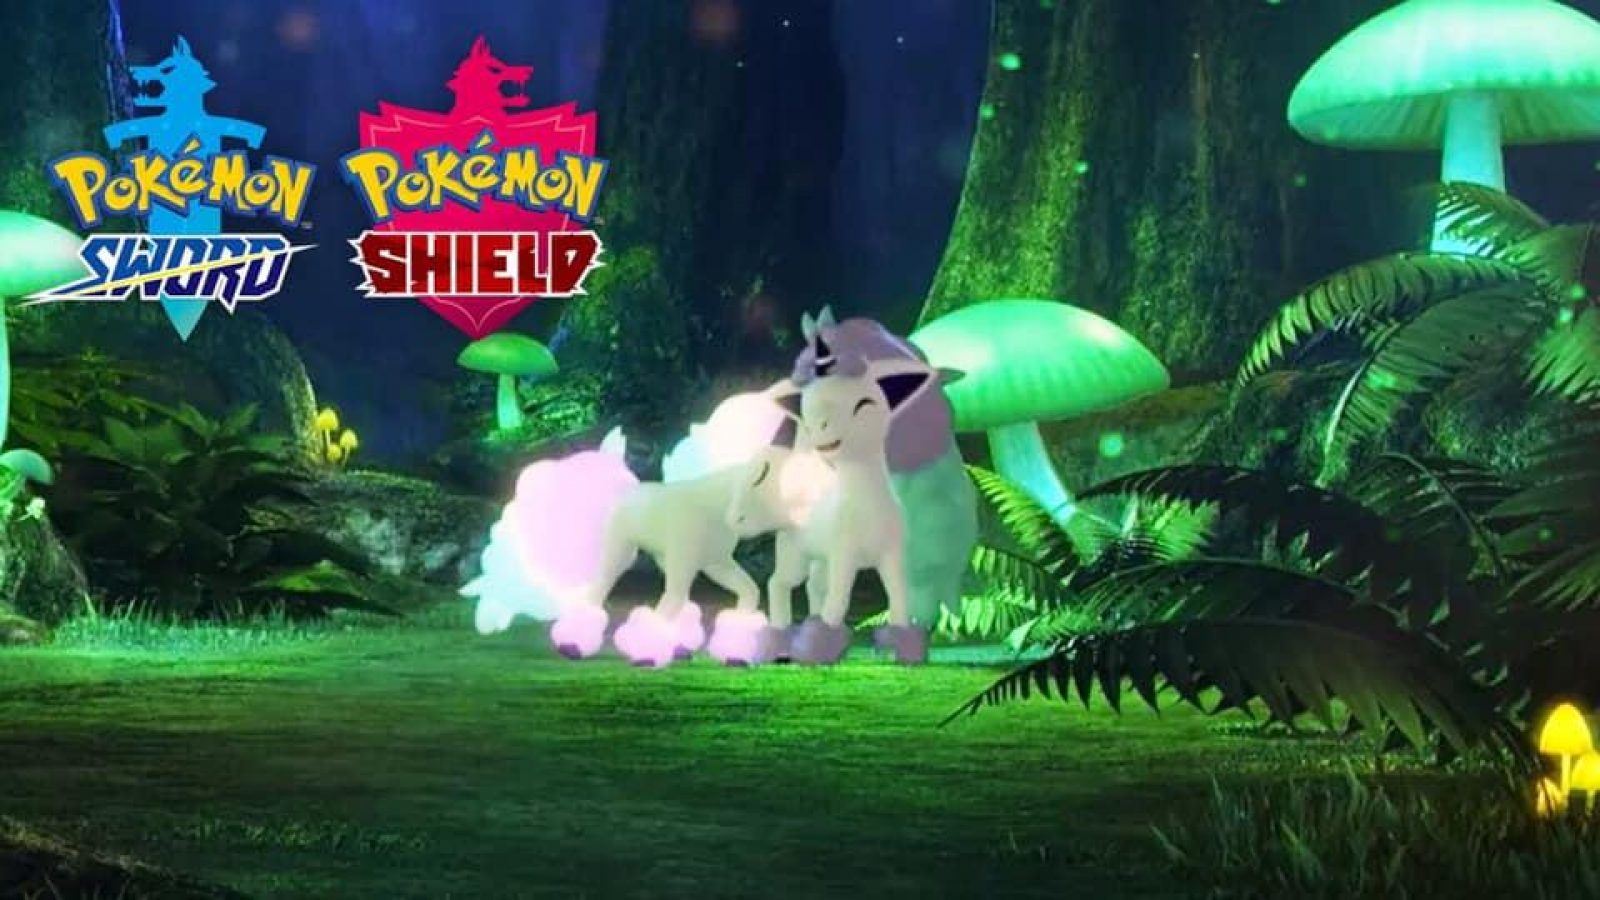 Pokemon Sword and Shield All Galarian Pokemon available